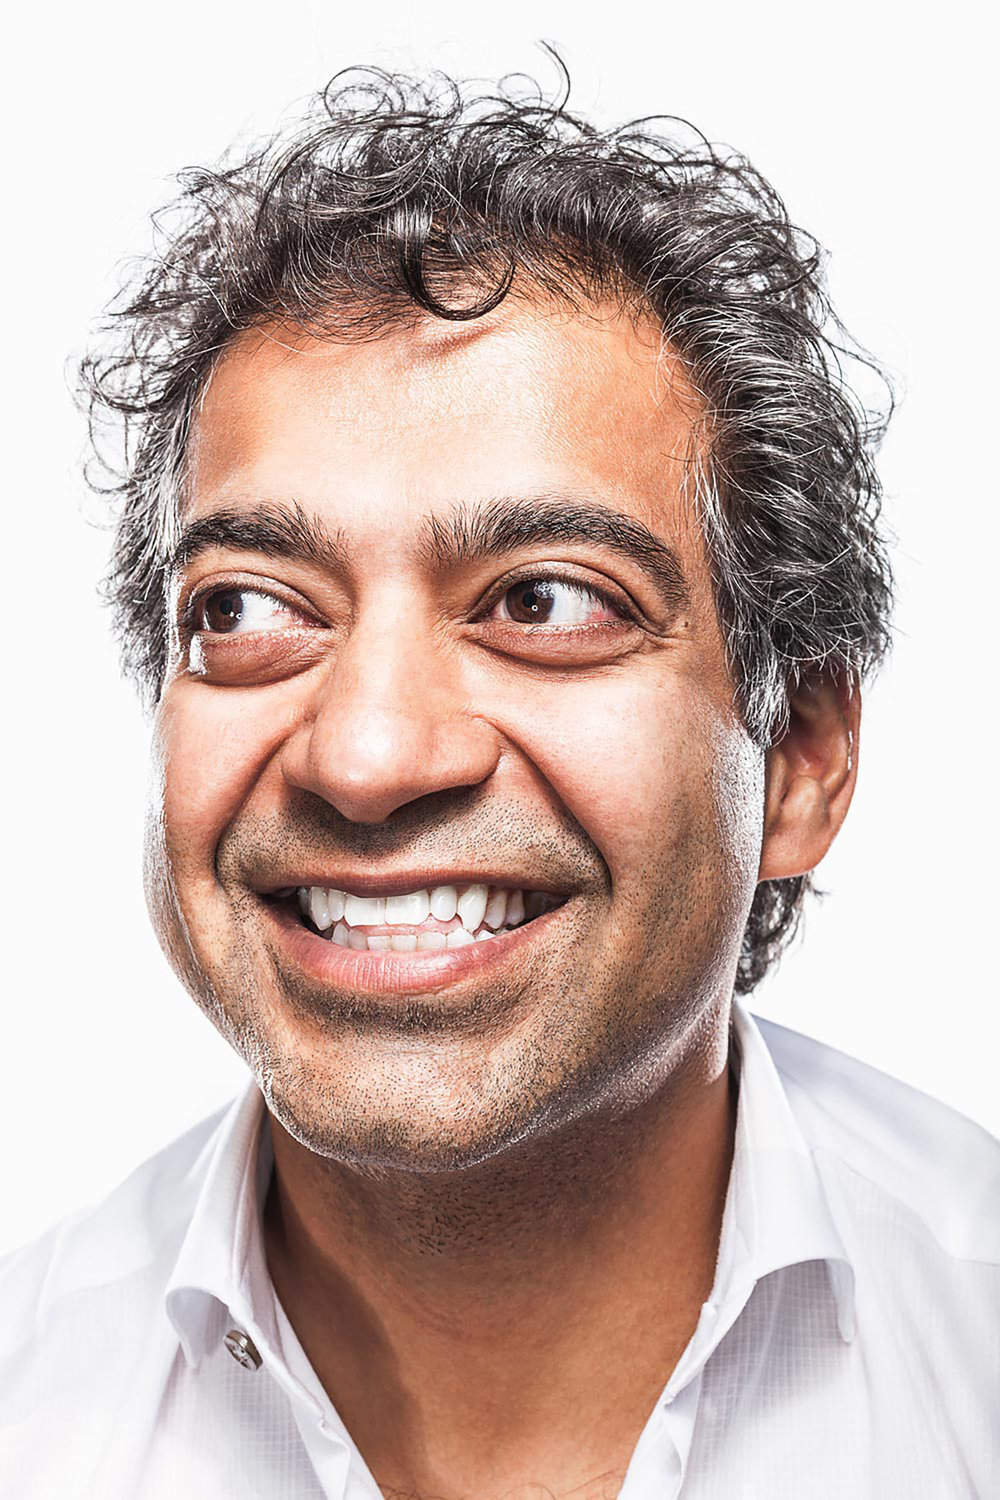 Naval Ravikant, Co-Founder of AngelList